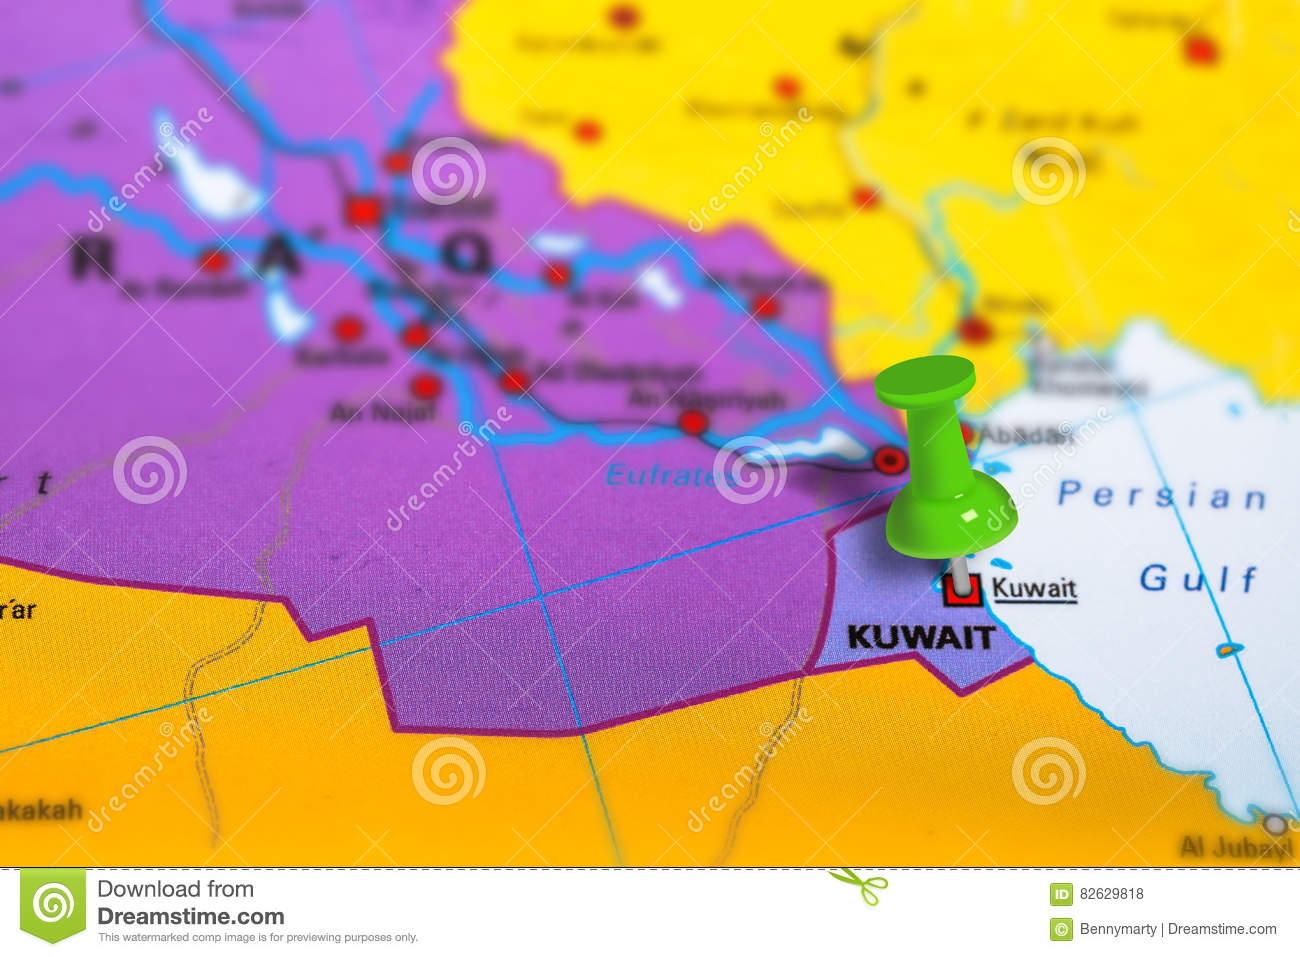 Kuwait city map stock photo  Image of color, city, asia - 82629818